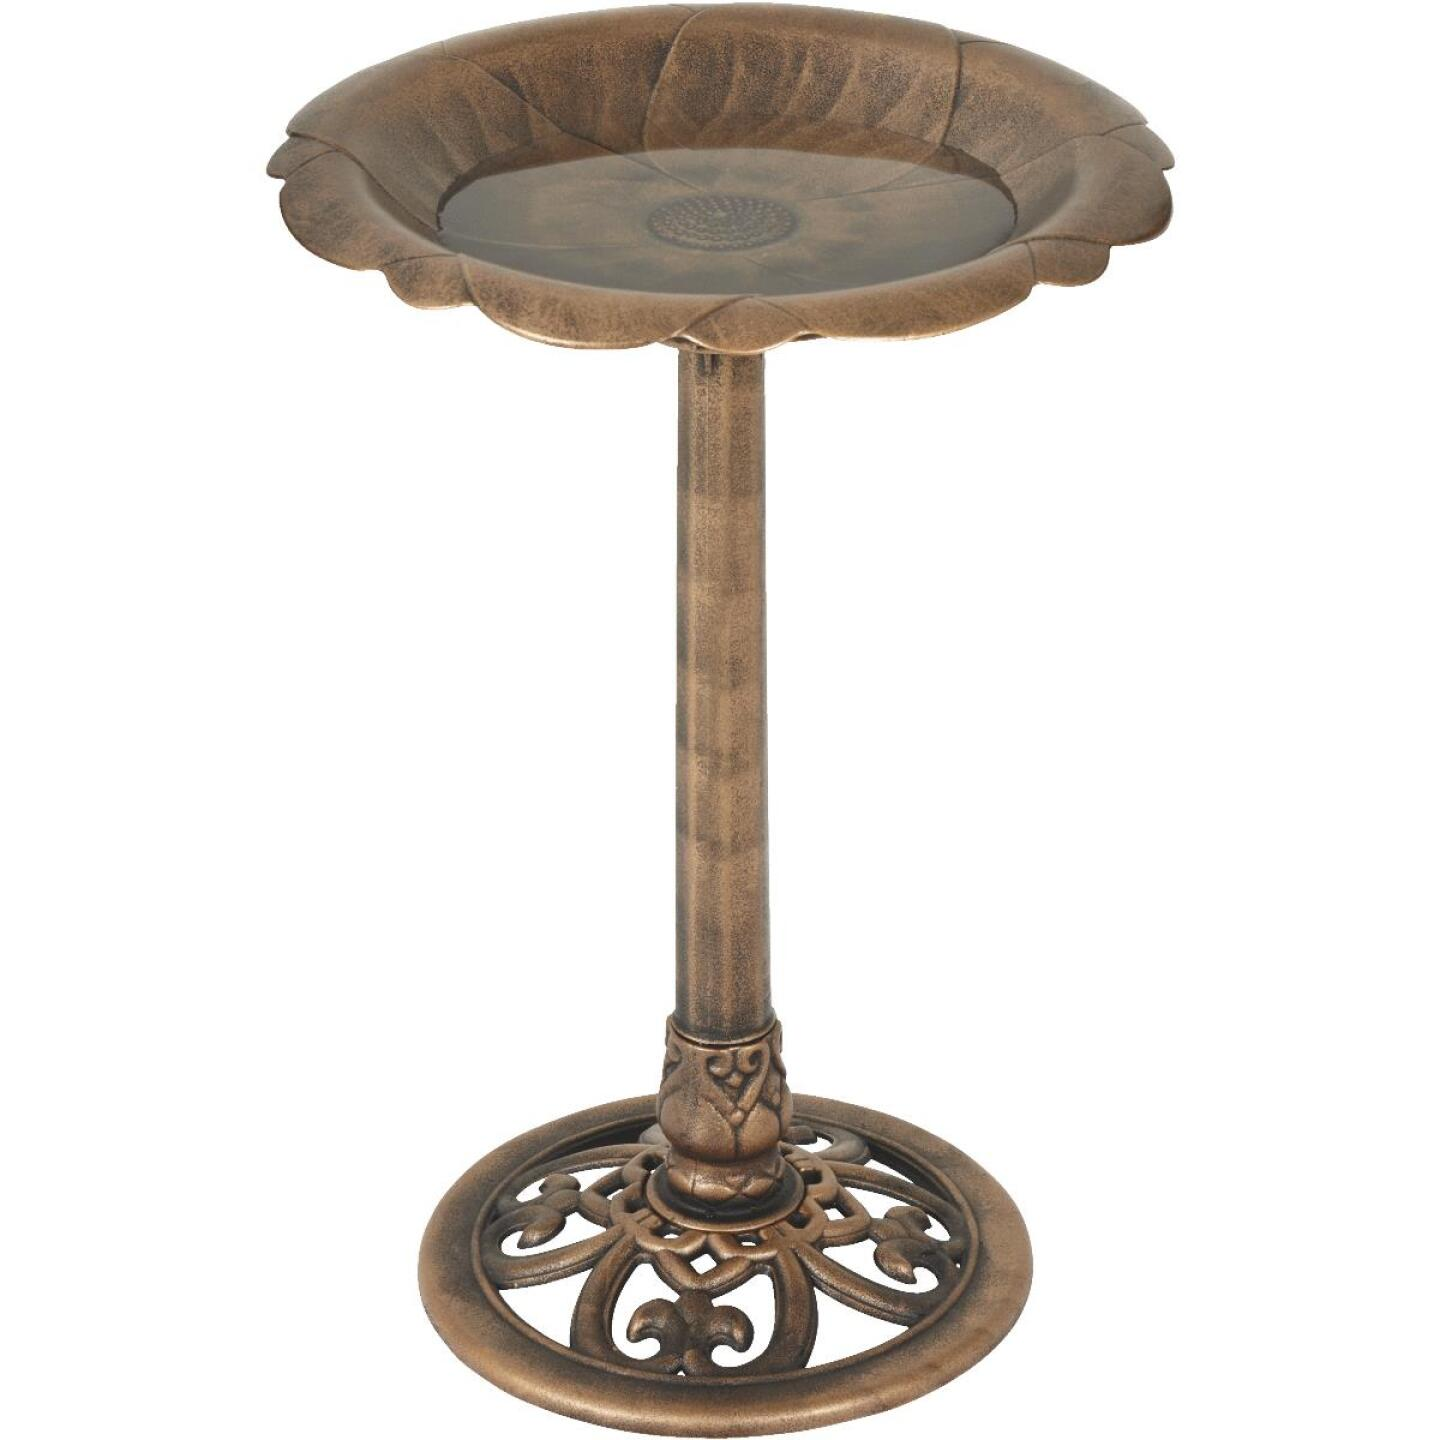 Best Garden Antique Bronze Flower Pedestal Bird Bath Image 2